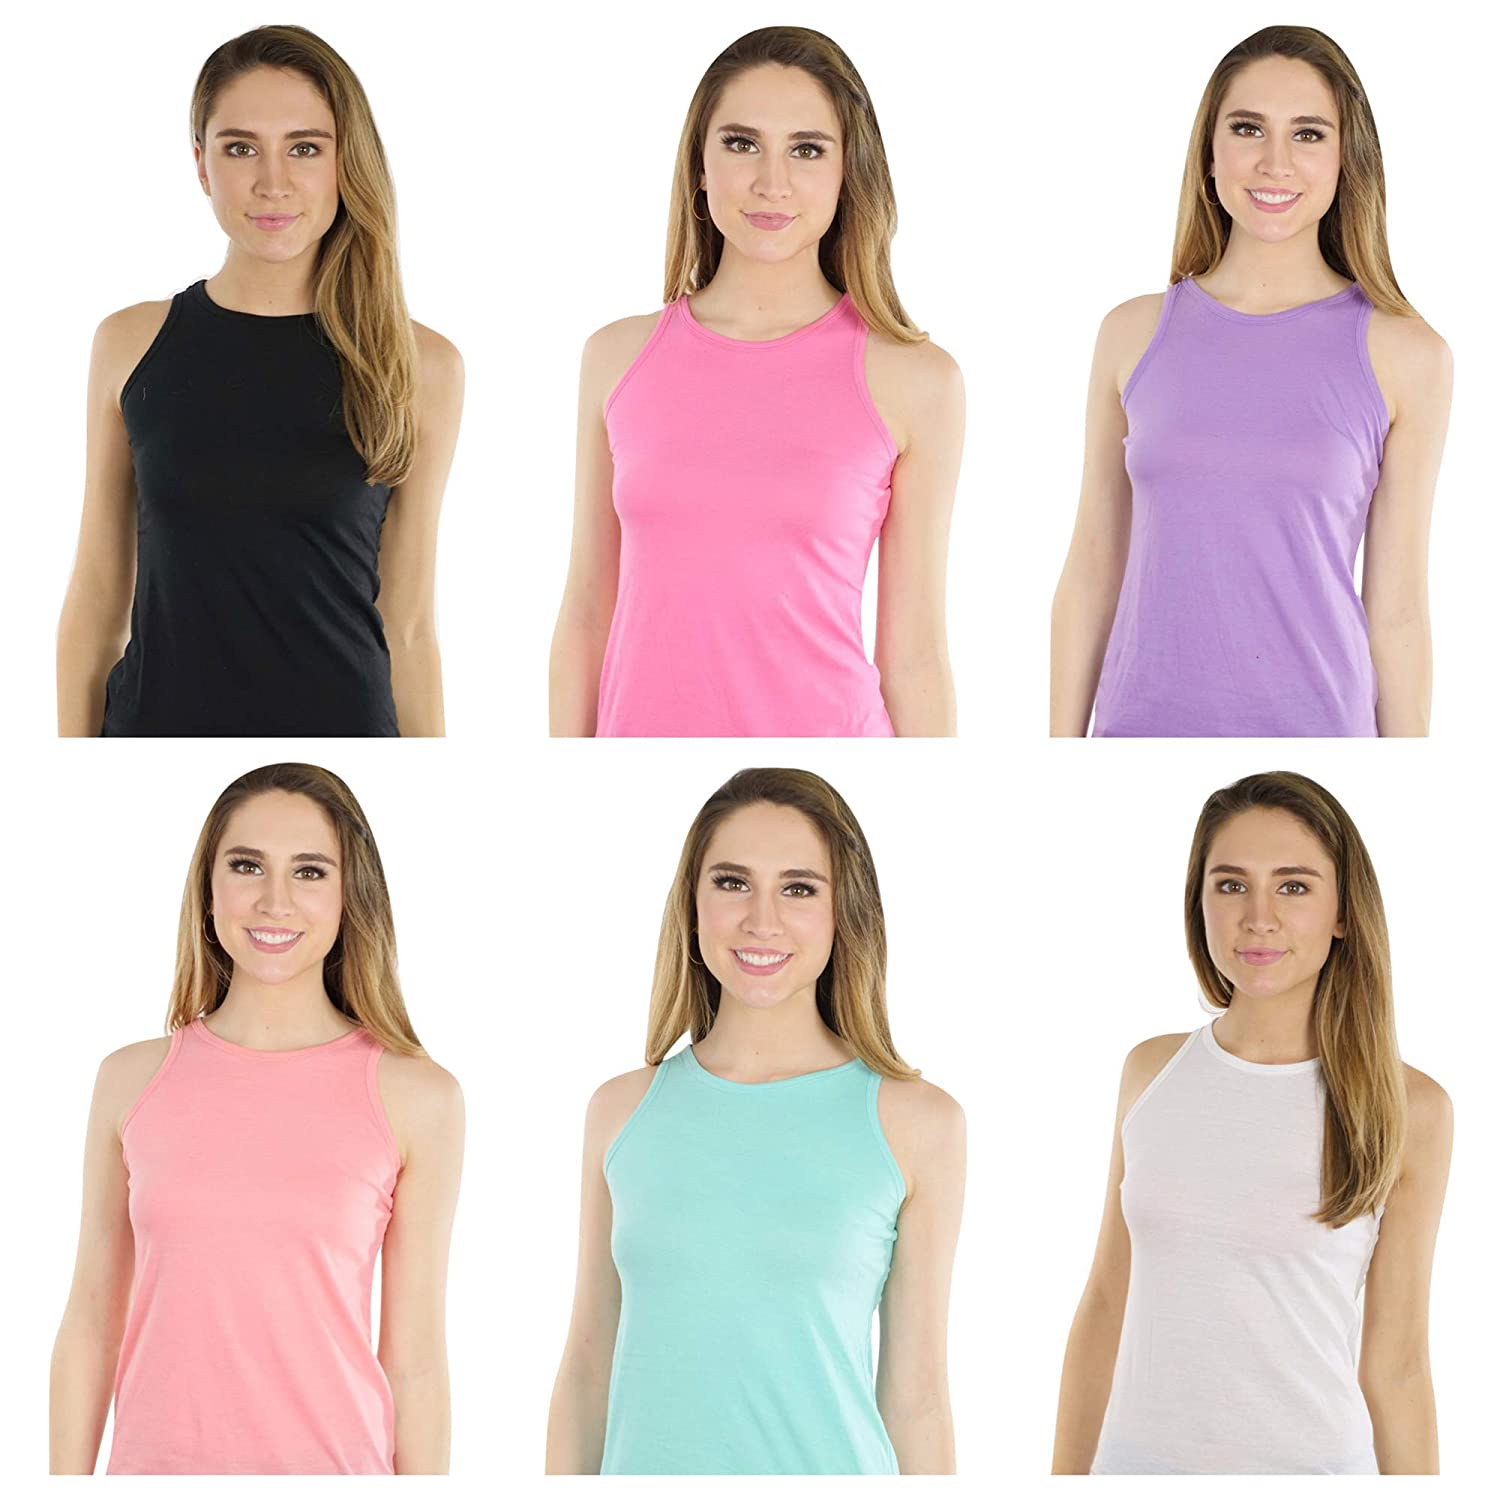 Profound Apparel Workout Clothes for Women-6 Pack Multi Color Bundle-Workout Tank Tops for Women